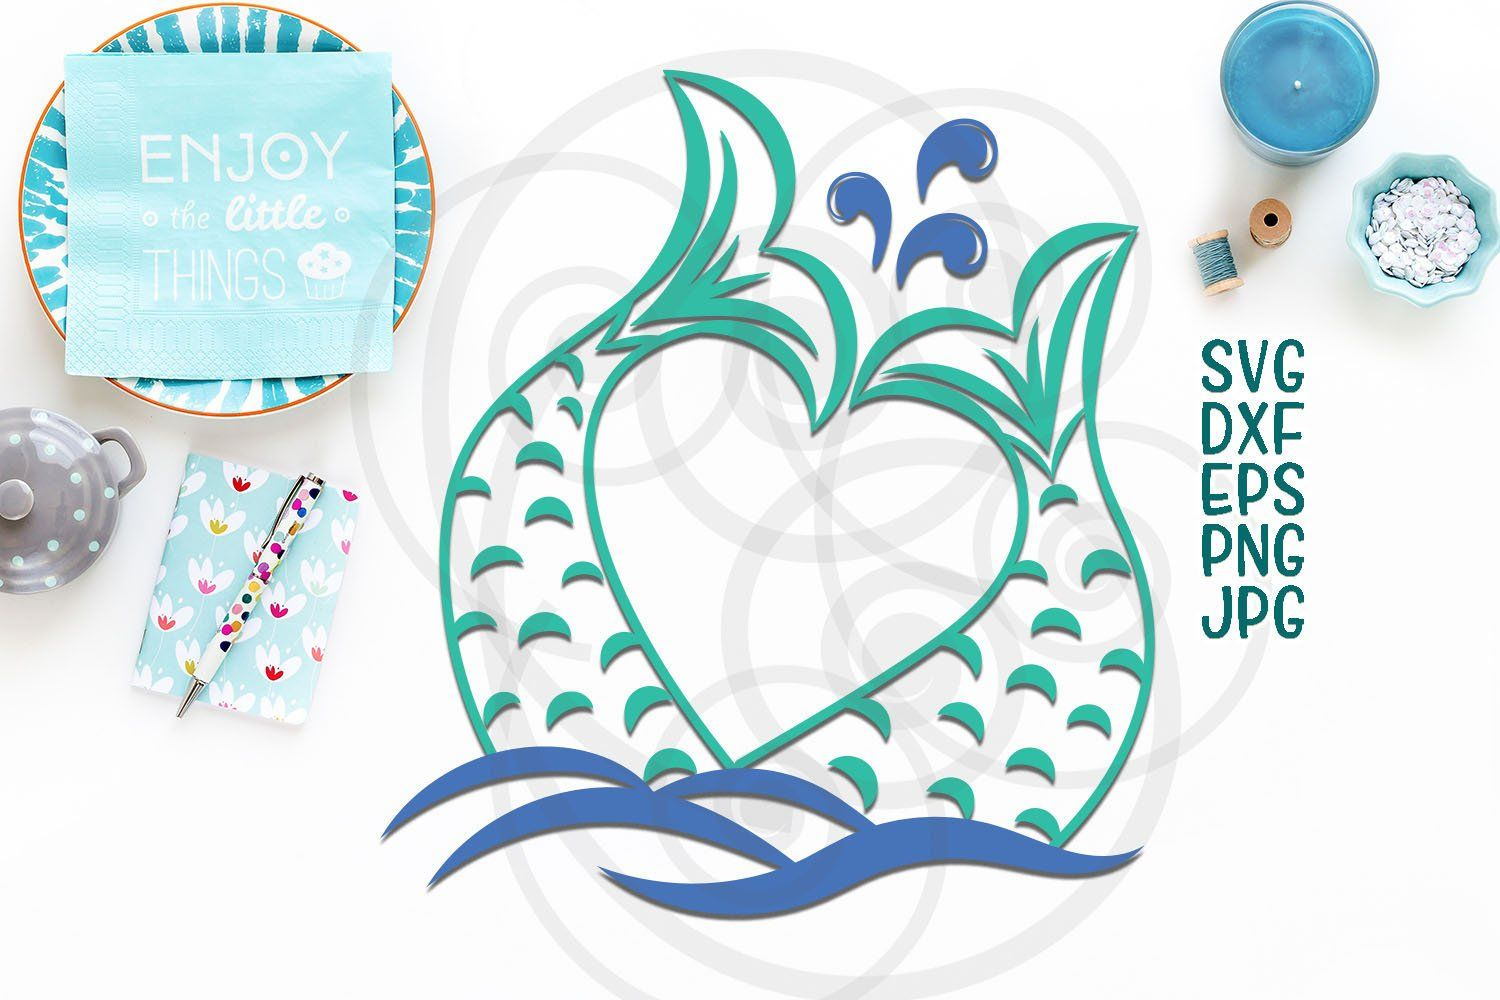 Mermaid tail svg, mermaid tail heart monogram svg file